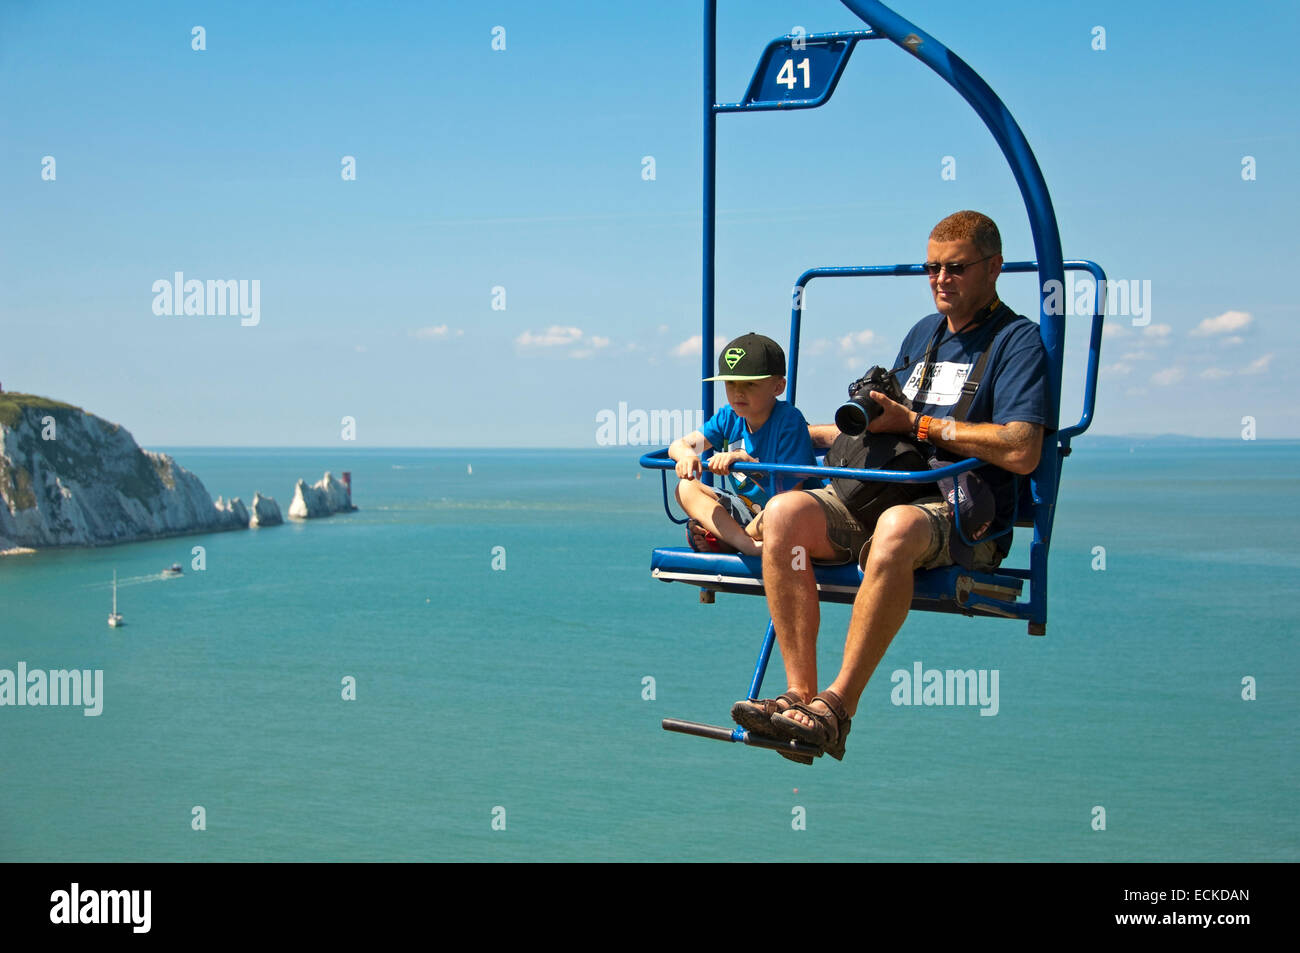 Charmant Horizontal View Of A Father And Son On The Chairlift At The Needles In The  Isle Of Wight.